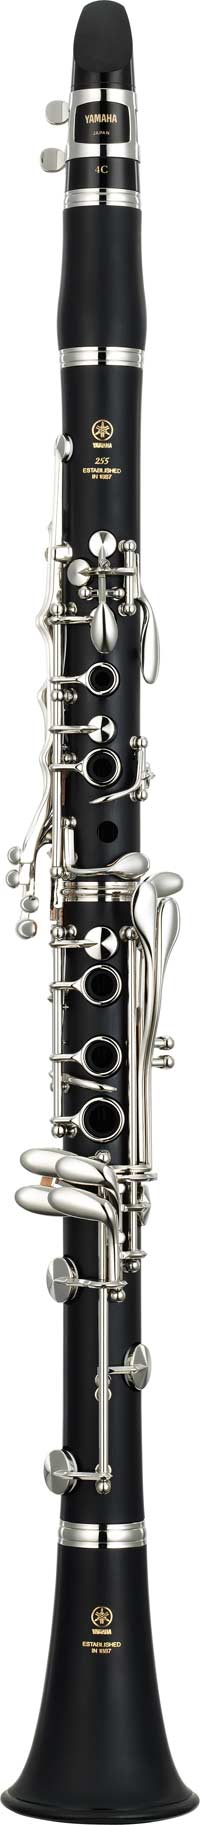 Yamaha clarinet in bb ycl 255 s free shipping worldwide for Yamaha beginner clarinet